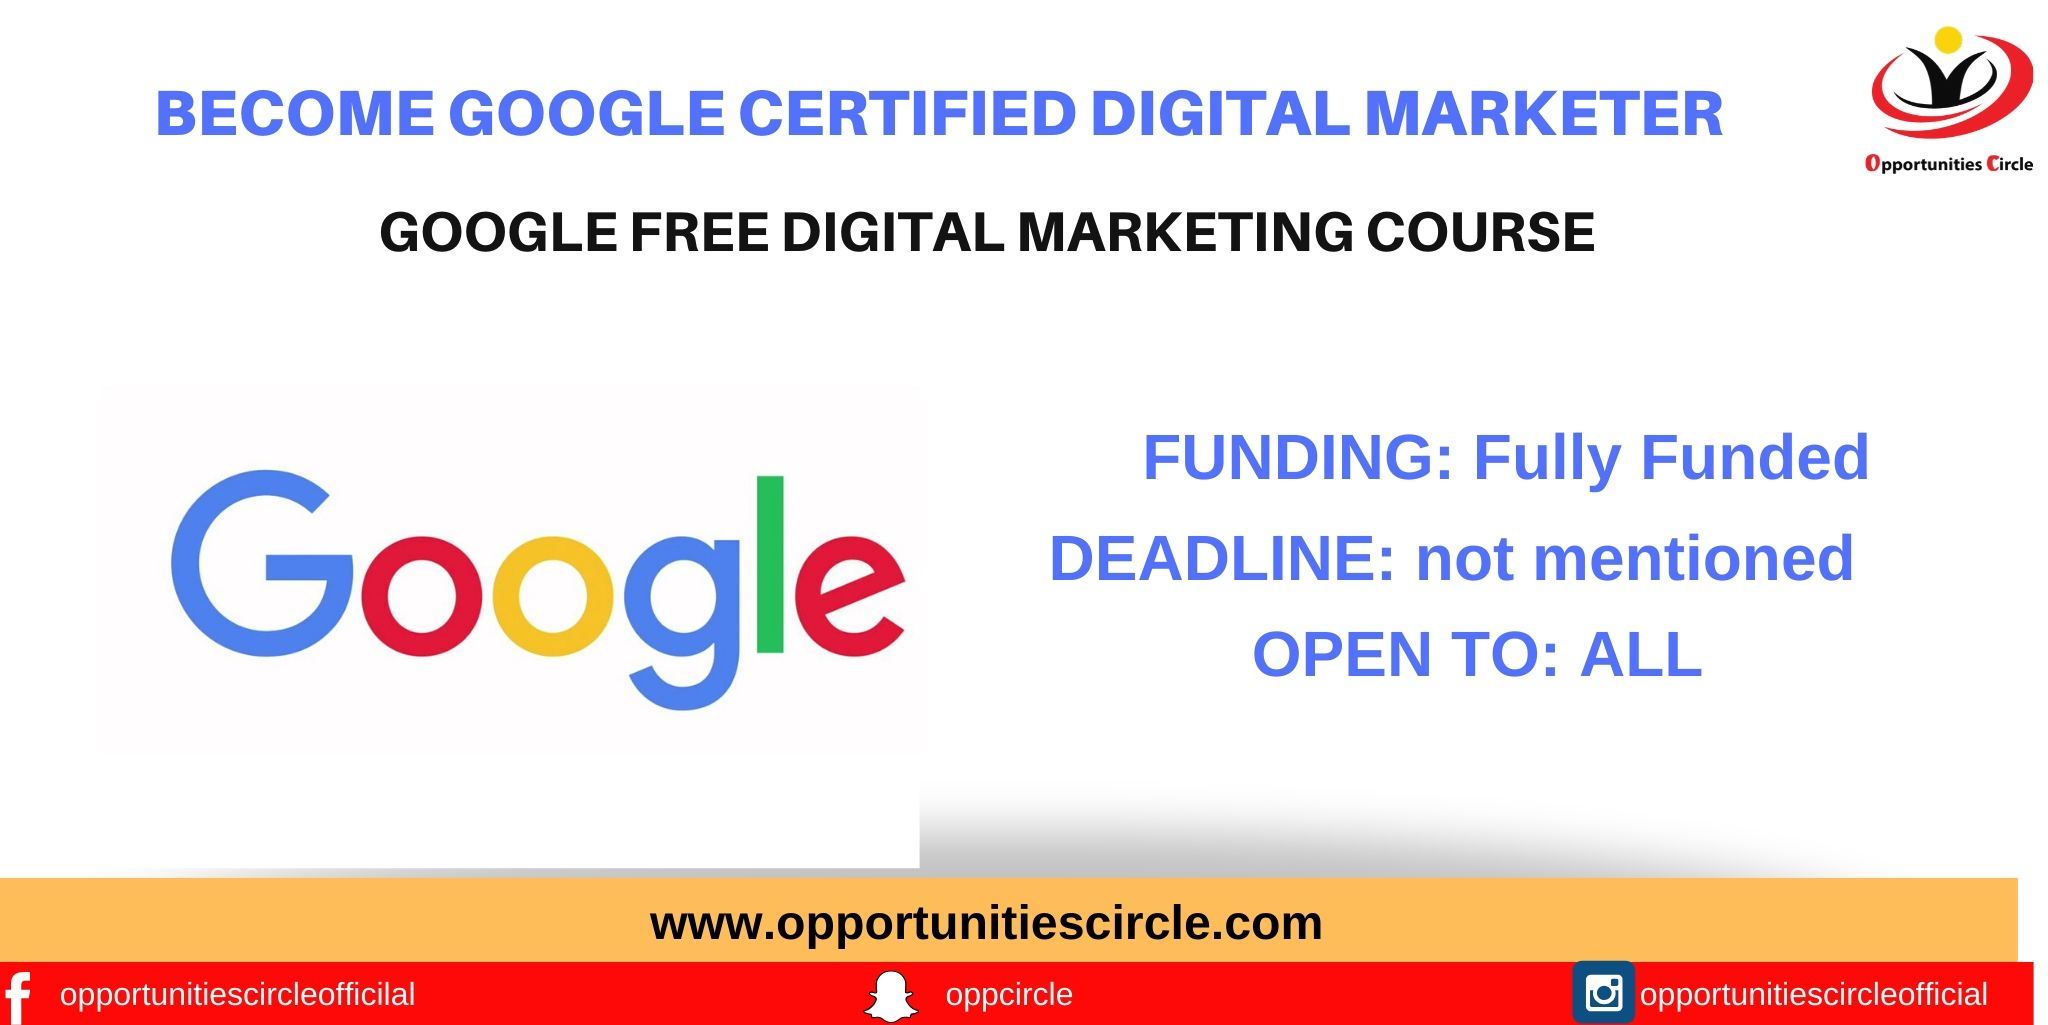 Read reviews & compare projects by leading digital marketing companies. Google Free Digital Marketing Course With Certification ...